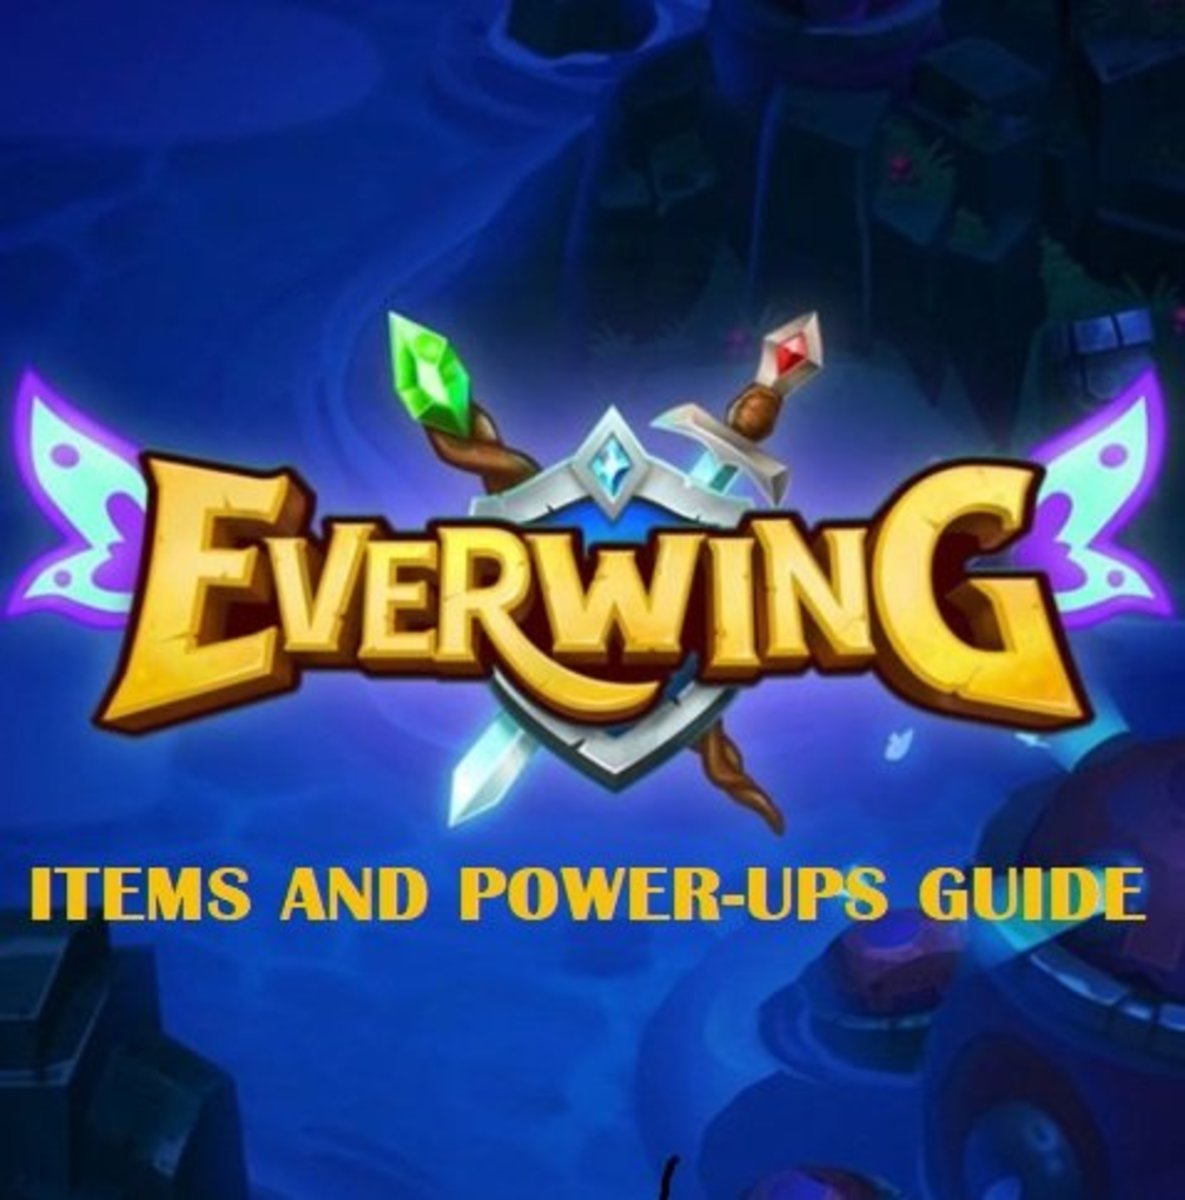 EverWing Items and Power-Ups Guide